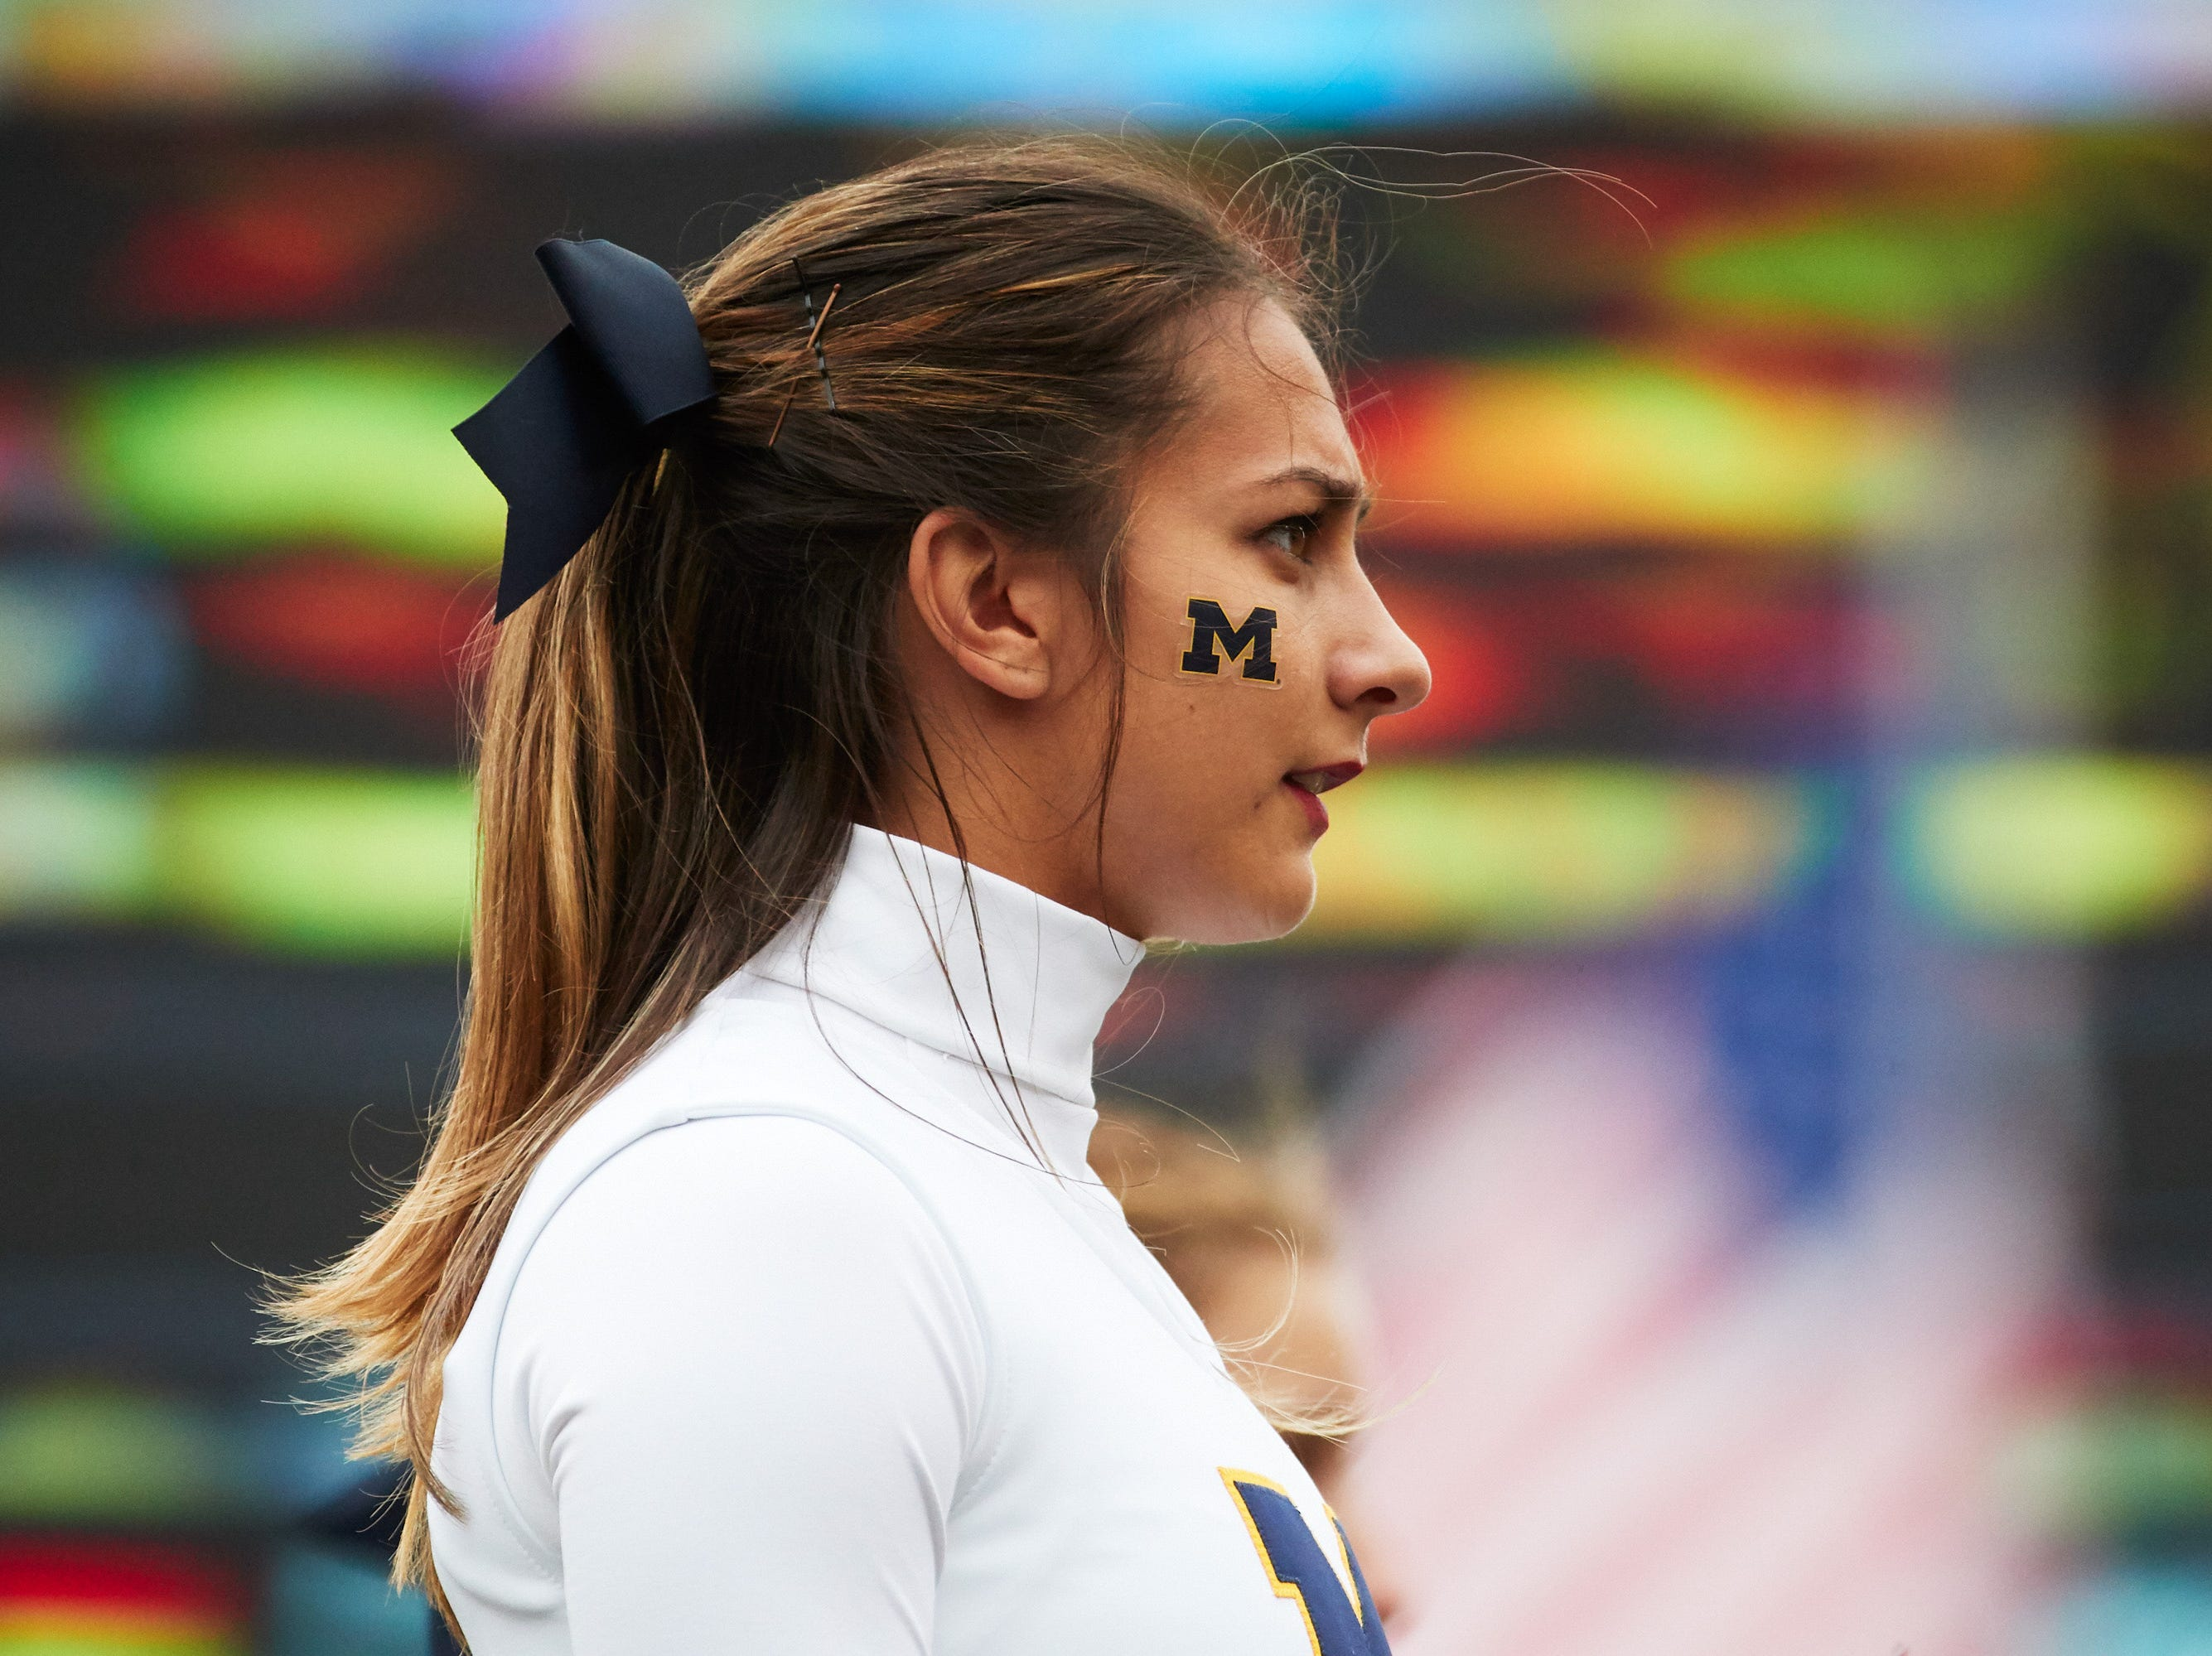 Sep 8, 2018; Ann Arbor, MI, USA; Michigan Wolverines cheerleader on the sideline in the first half against the Western Michigan Broncos at Michigan Stadium. Mandatory Credit: Rick Osentoski-USA TODAY Sports